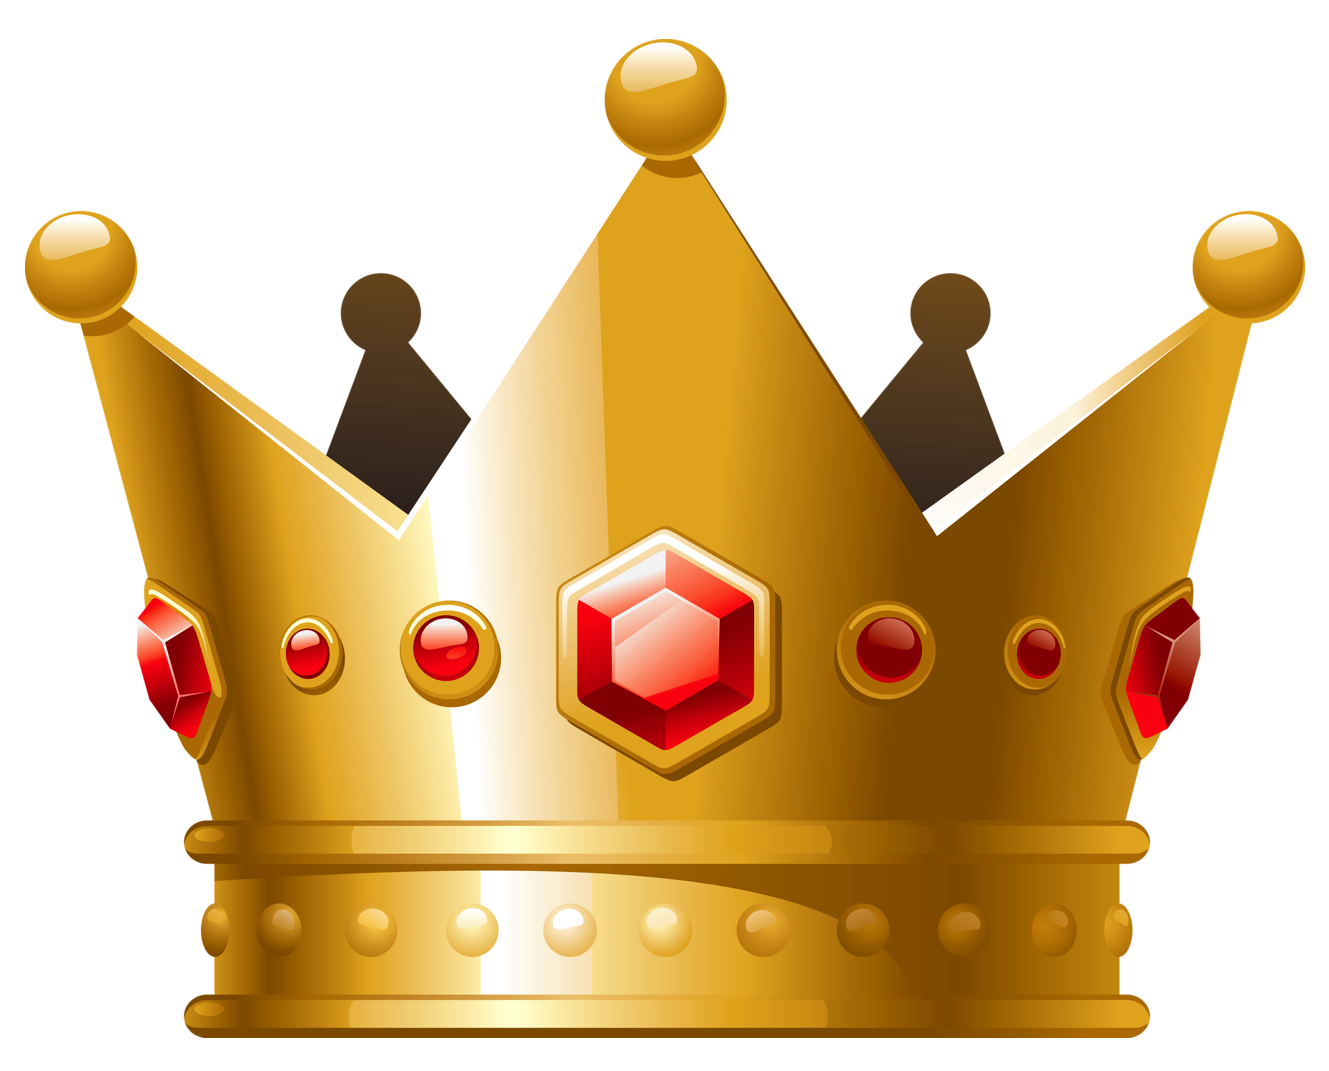 British crown clipart picture royalty free library Crown transparent crown image with transparent background 2 | Crowns ... picture royalty free library